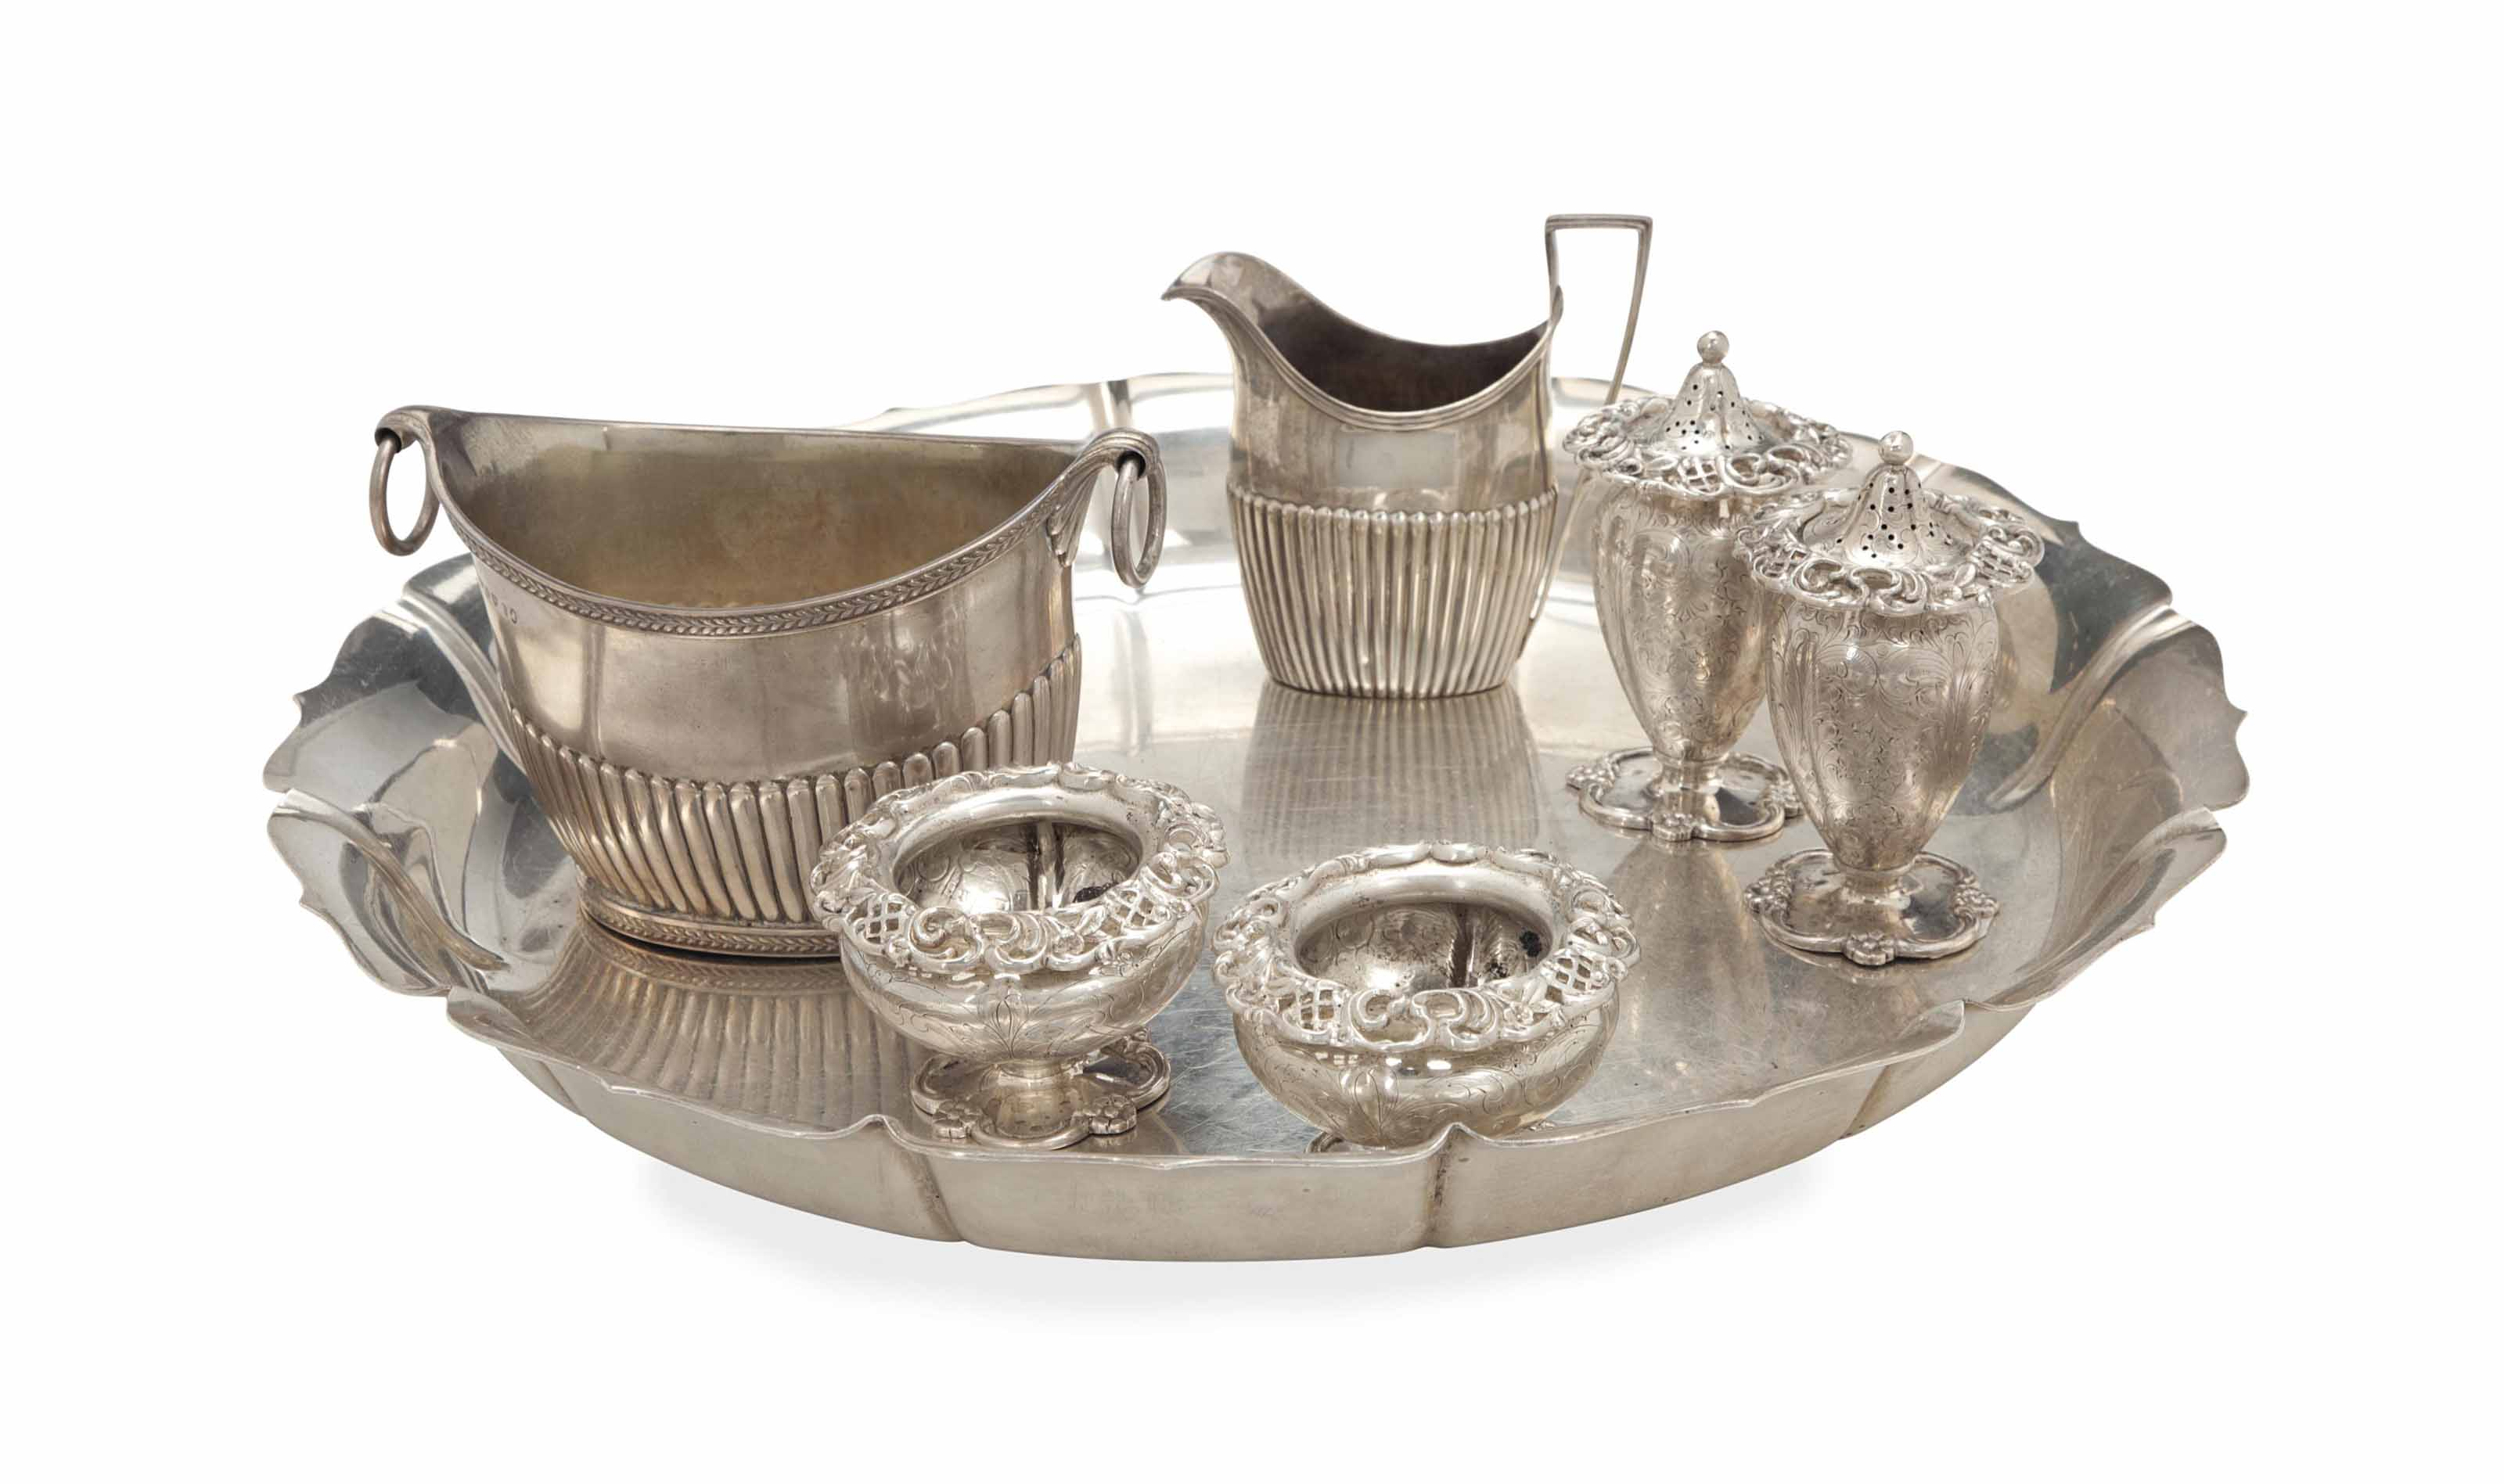 A GEORGE III SILVER SUGAR BASKET AND CREAM JUG, AND A GROUP OF AMERICAN SILVER SERVING WARES,